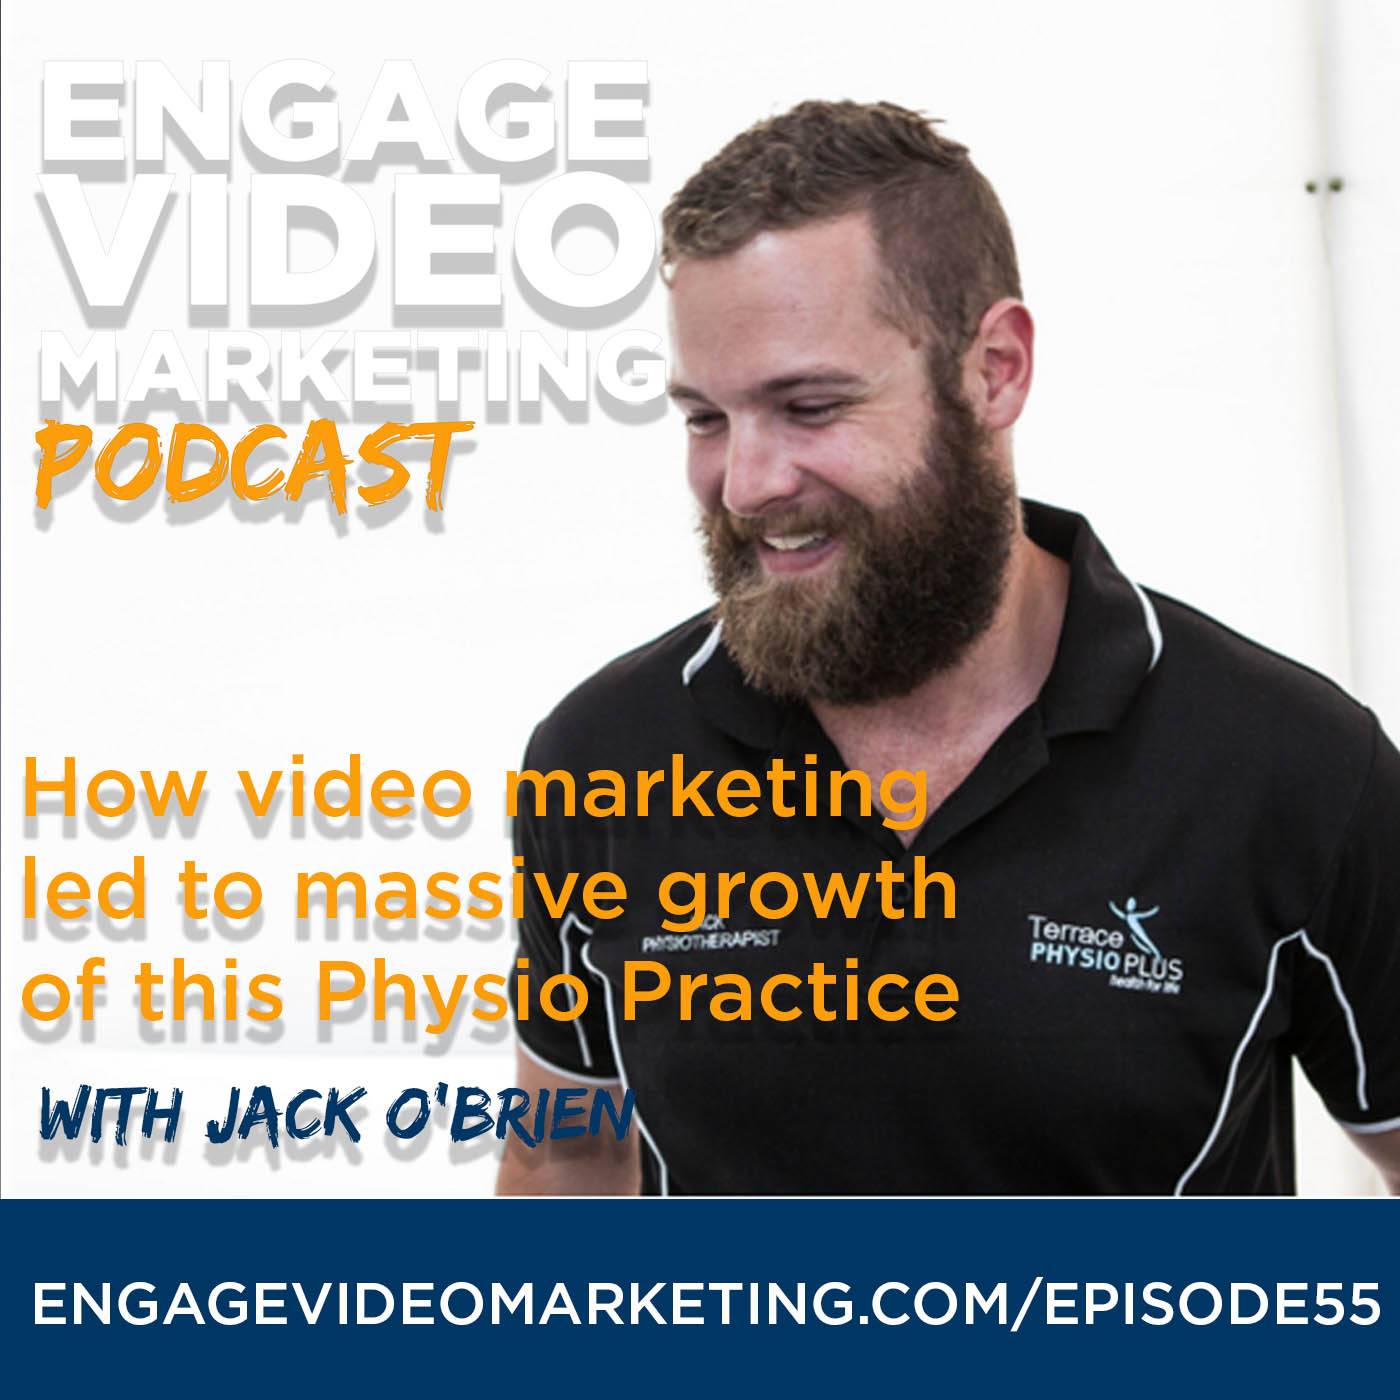 How Video Marketing Led to Massive Growth of this Physio Practice